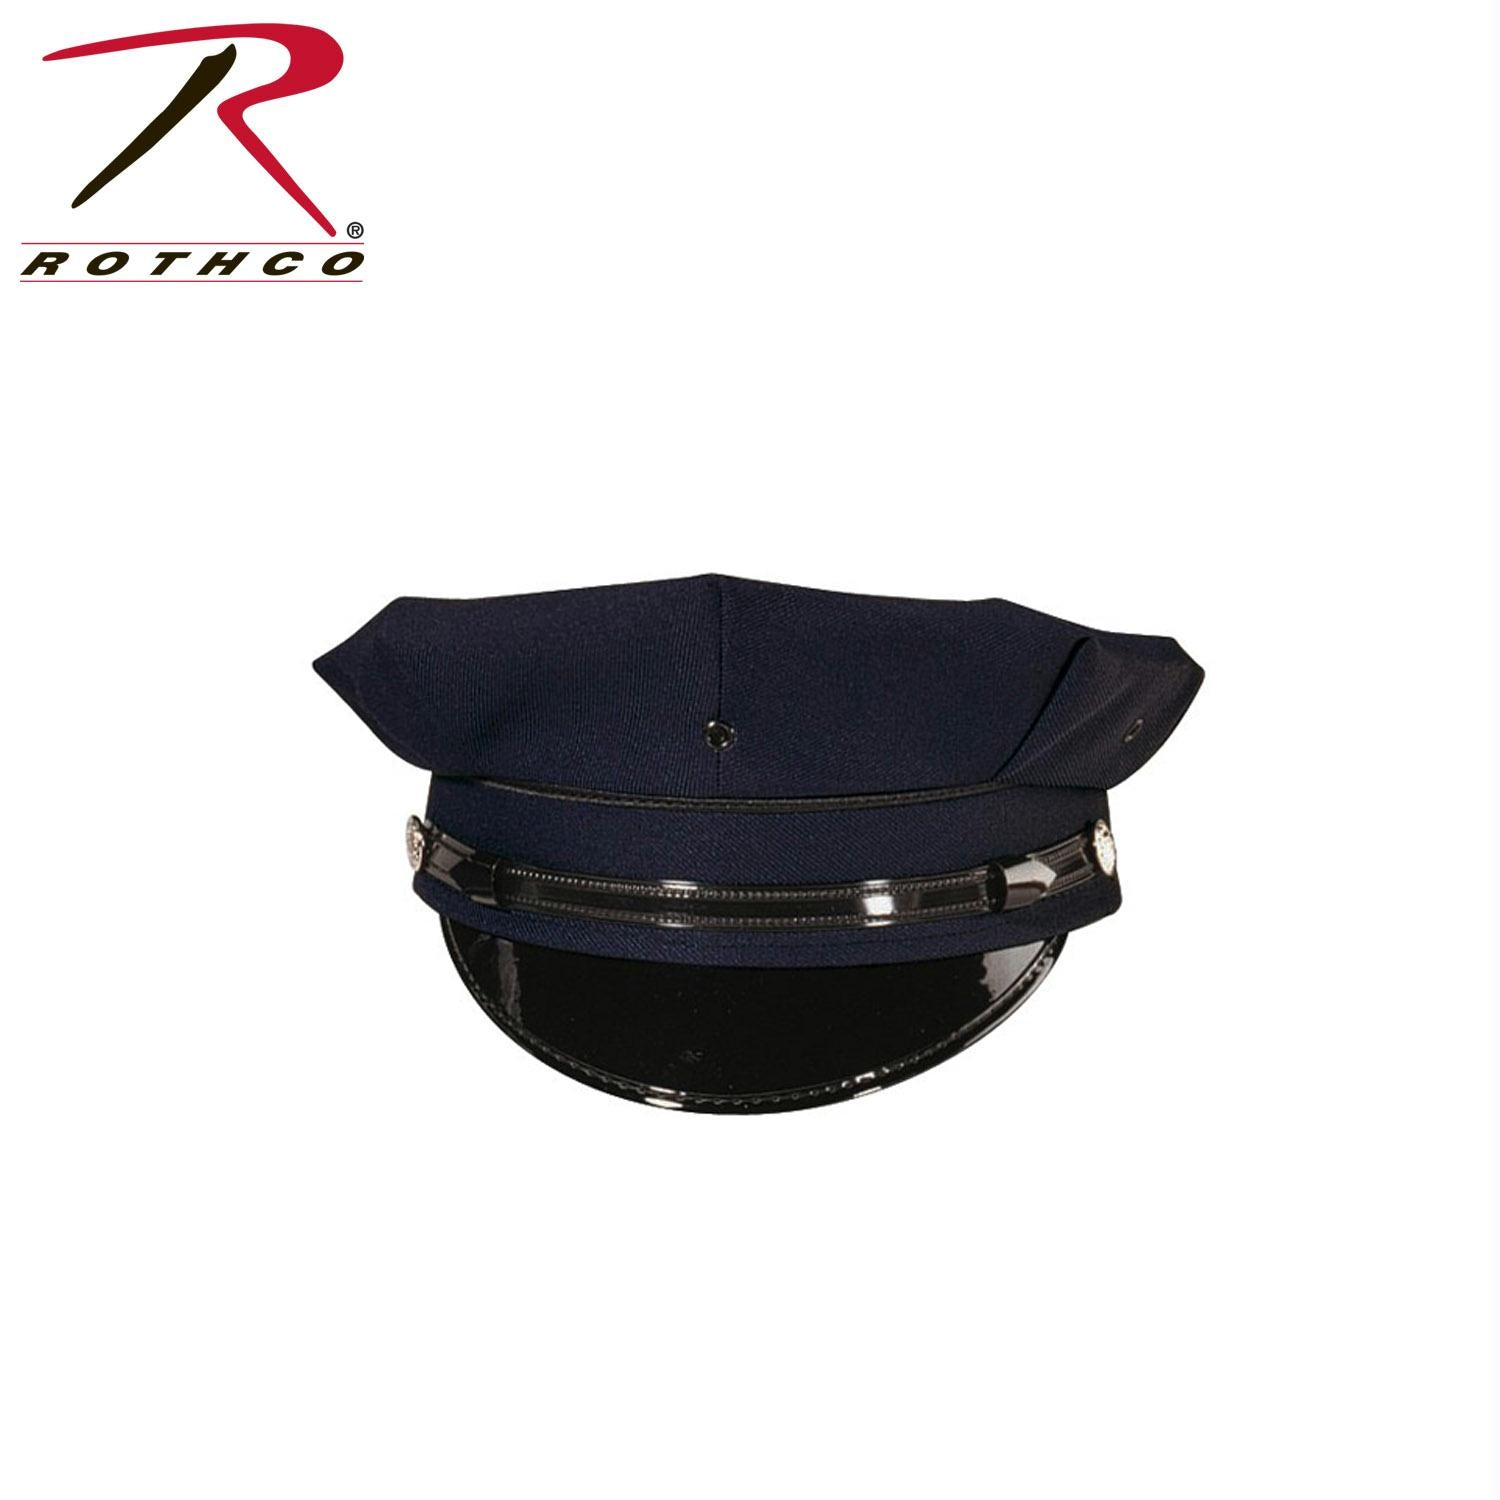 Rothco 8 Point Police/Security Cap - 6 7/8